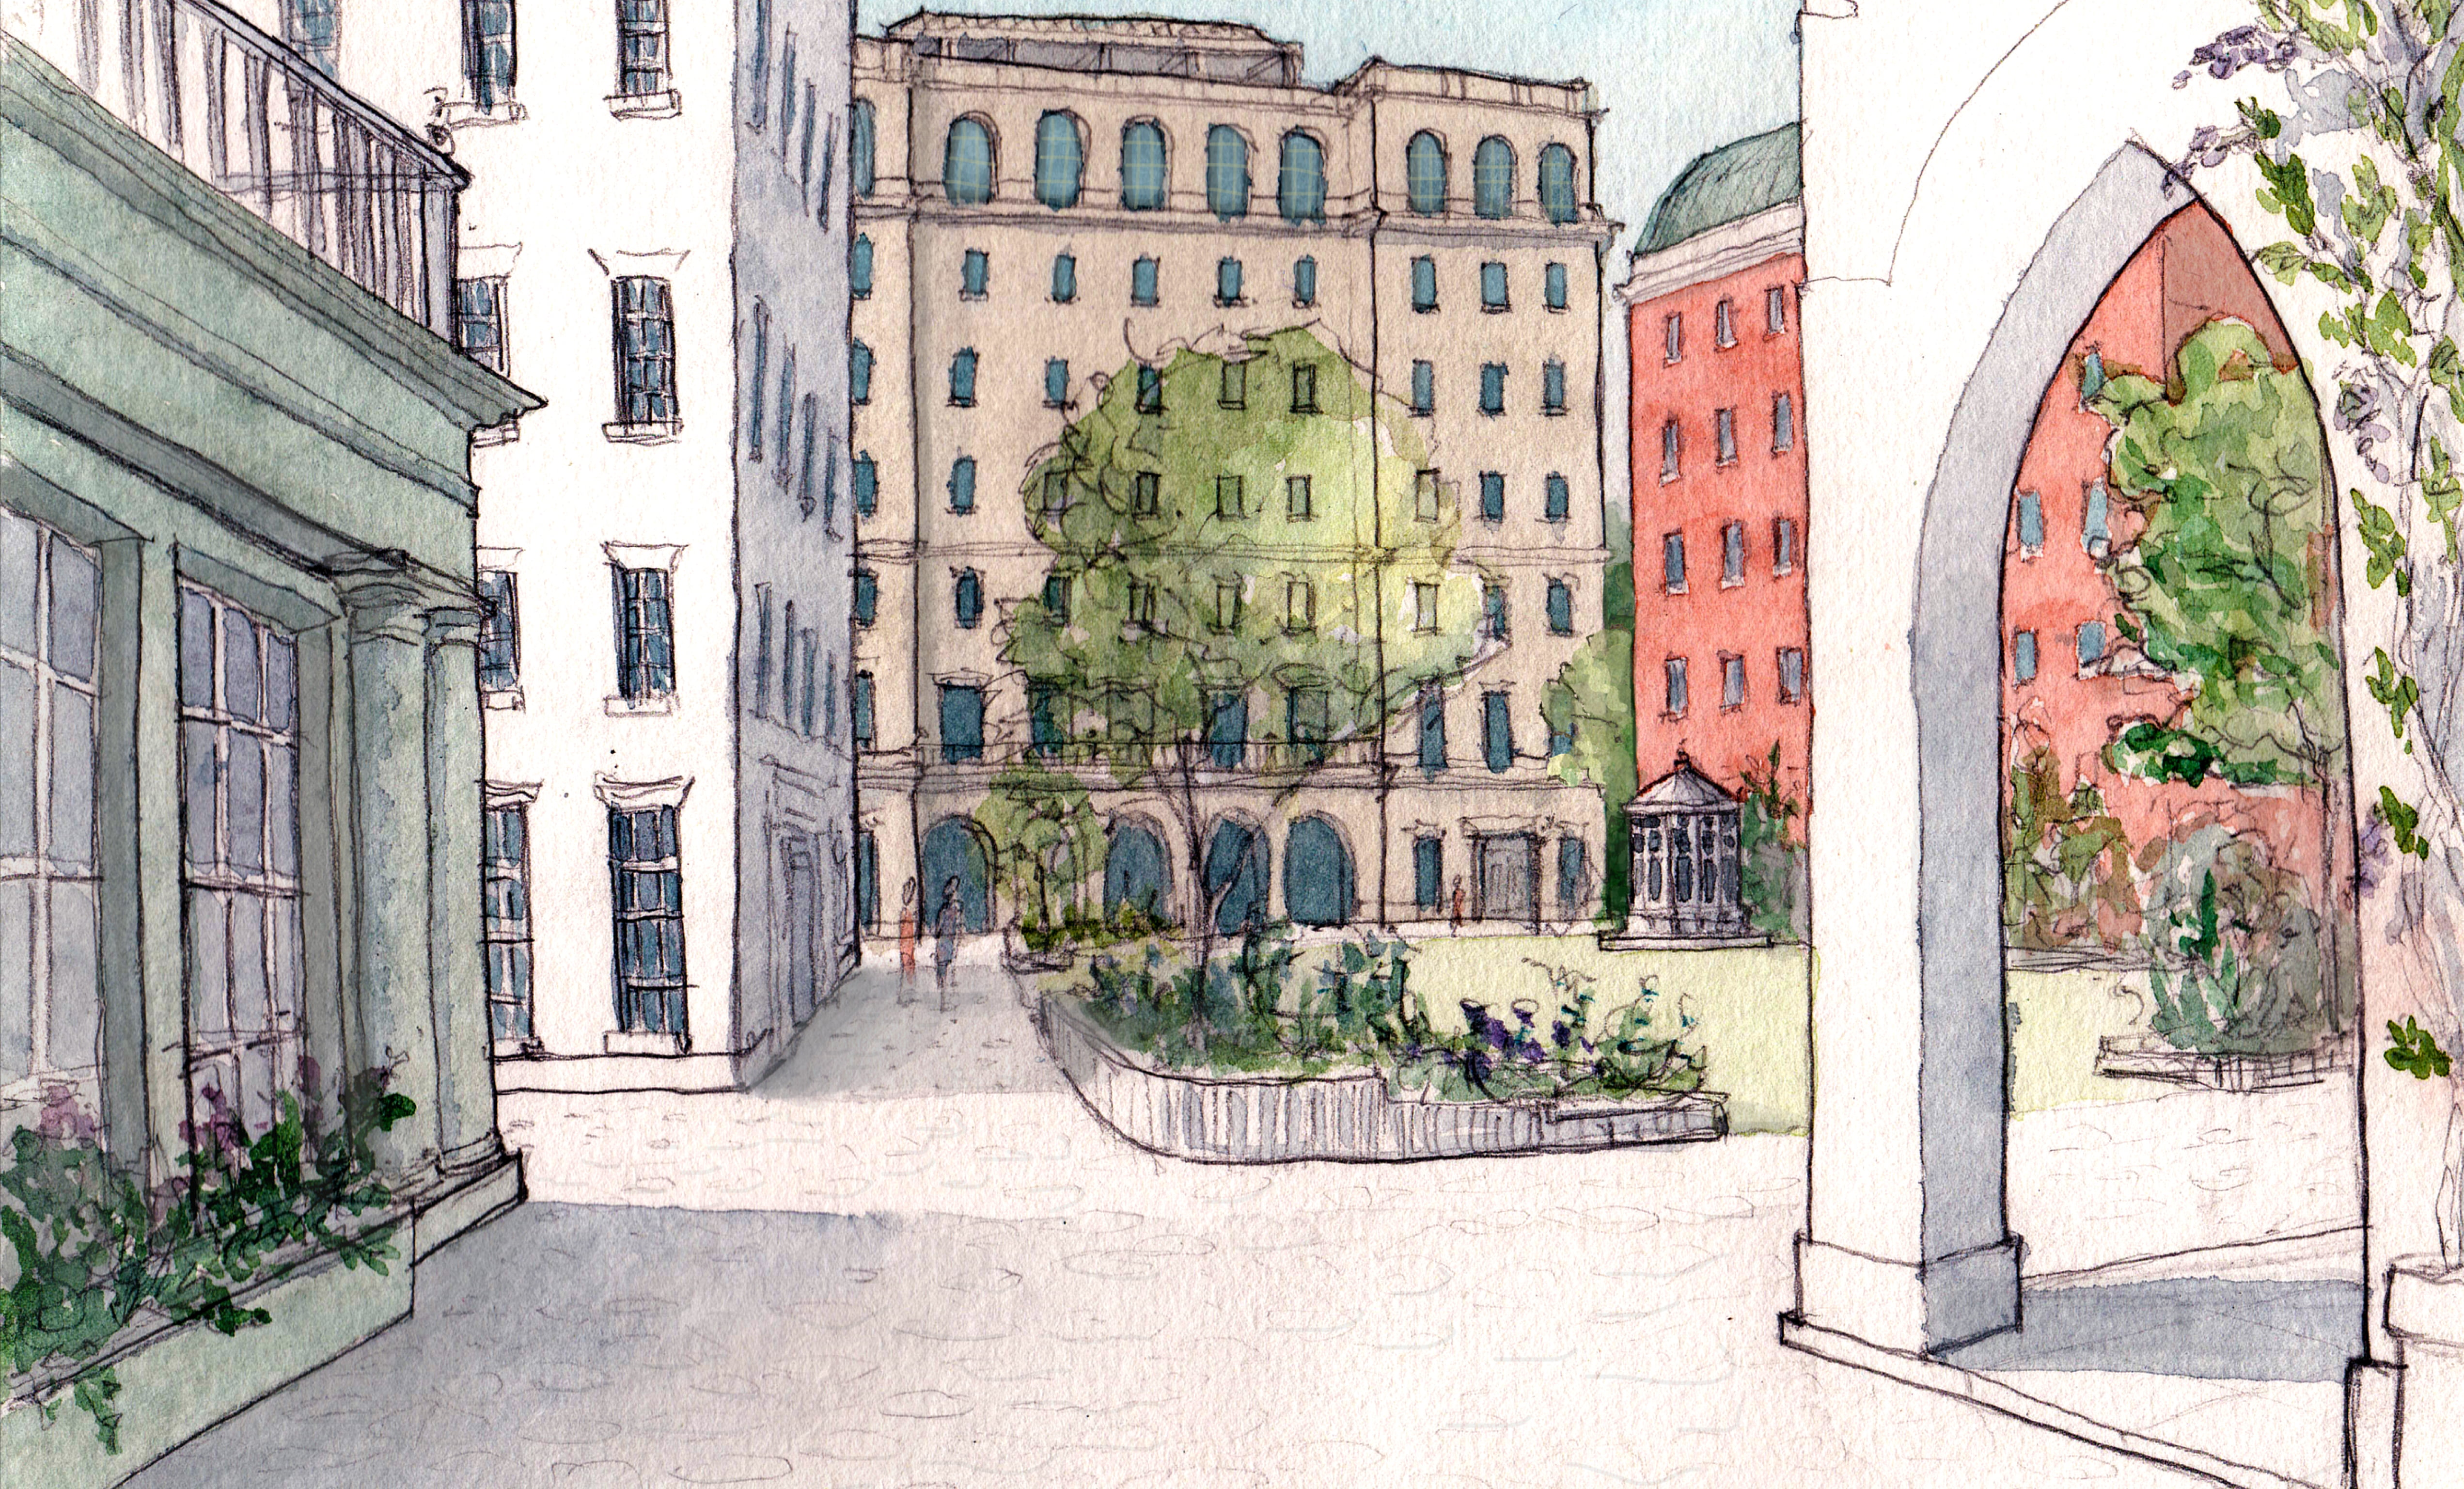 View of the proposed green square off Hampstead Road